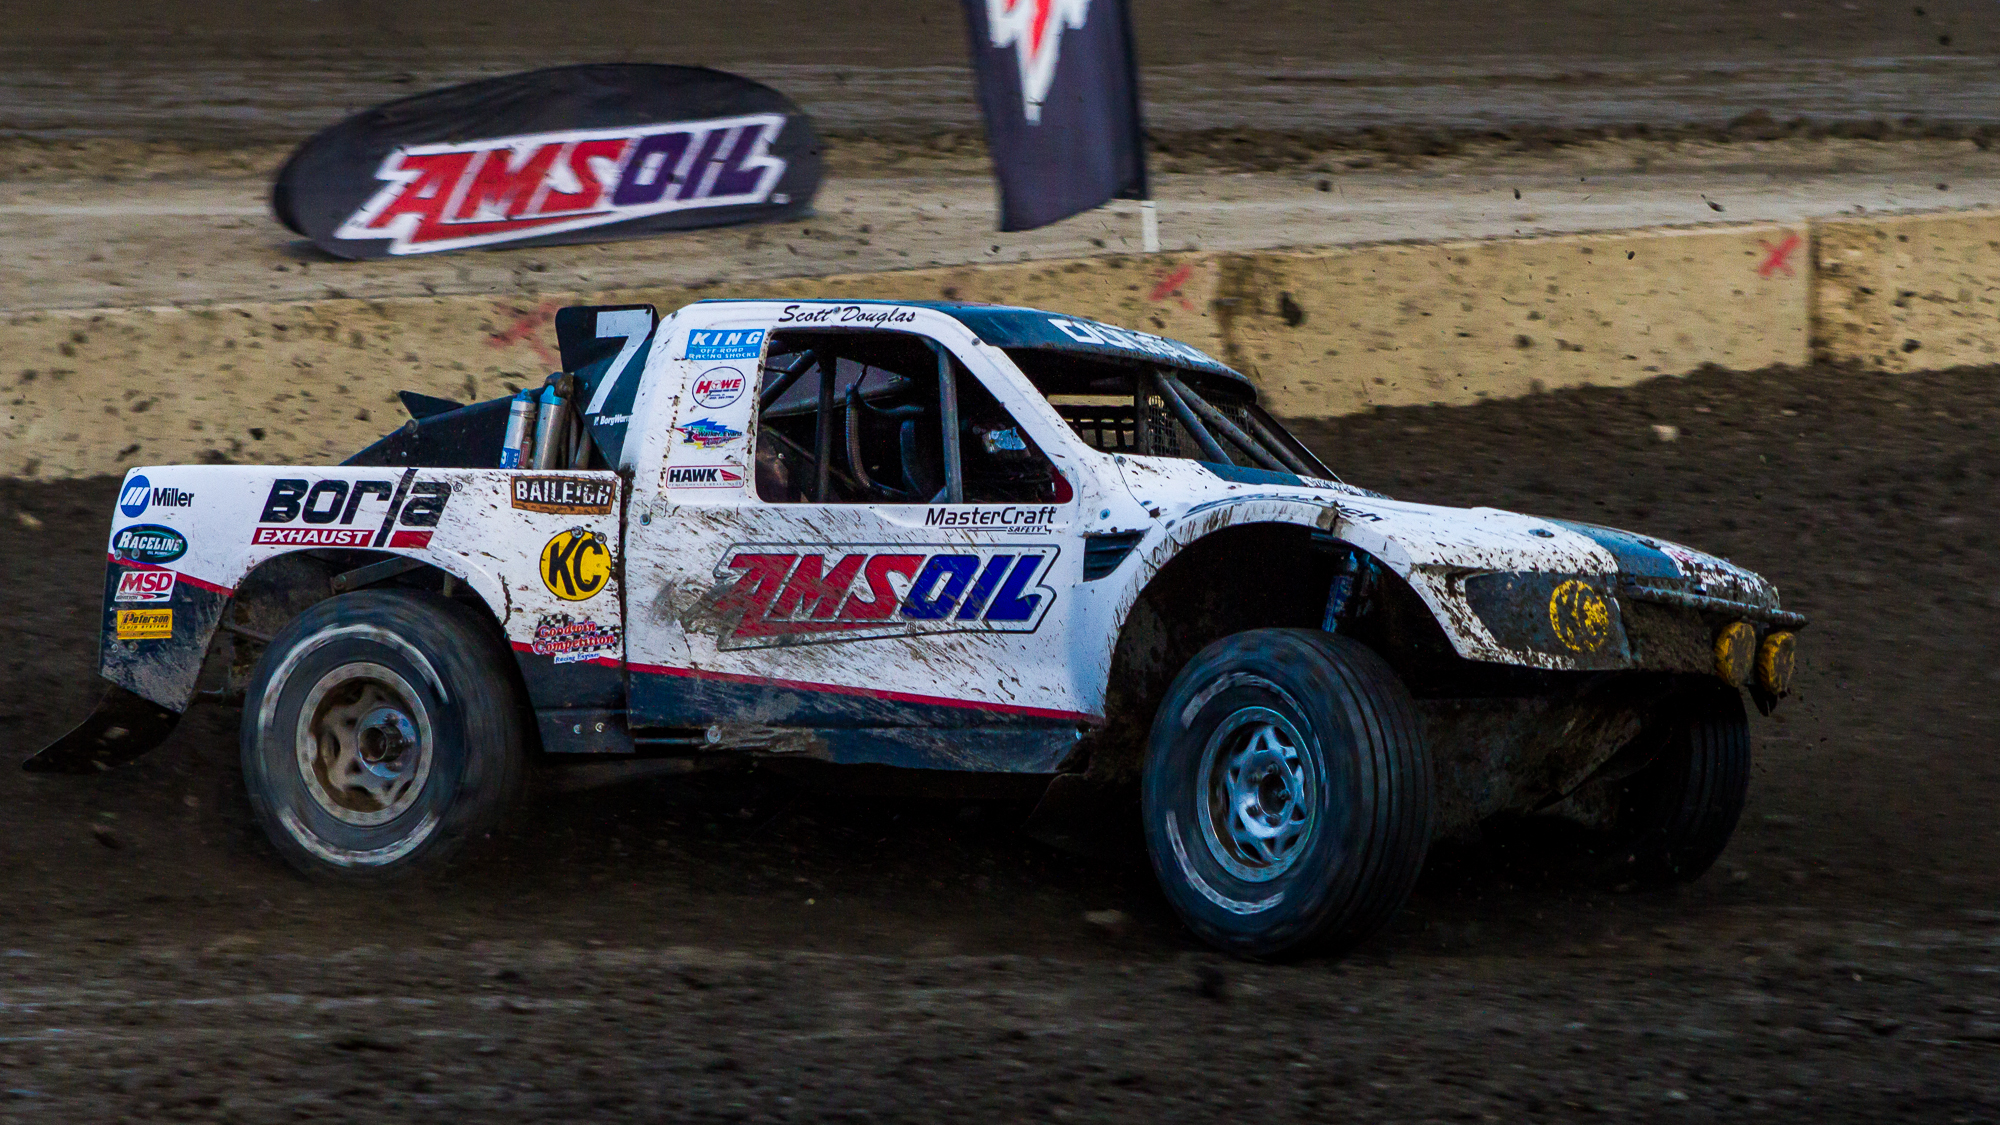 offroad race racing truck pickup 4x4 fs wallpaper background 2000x1125